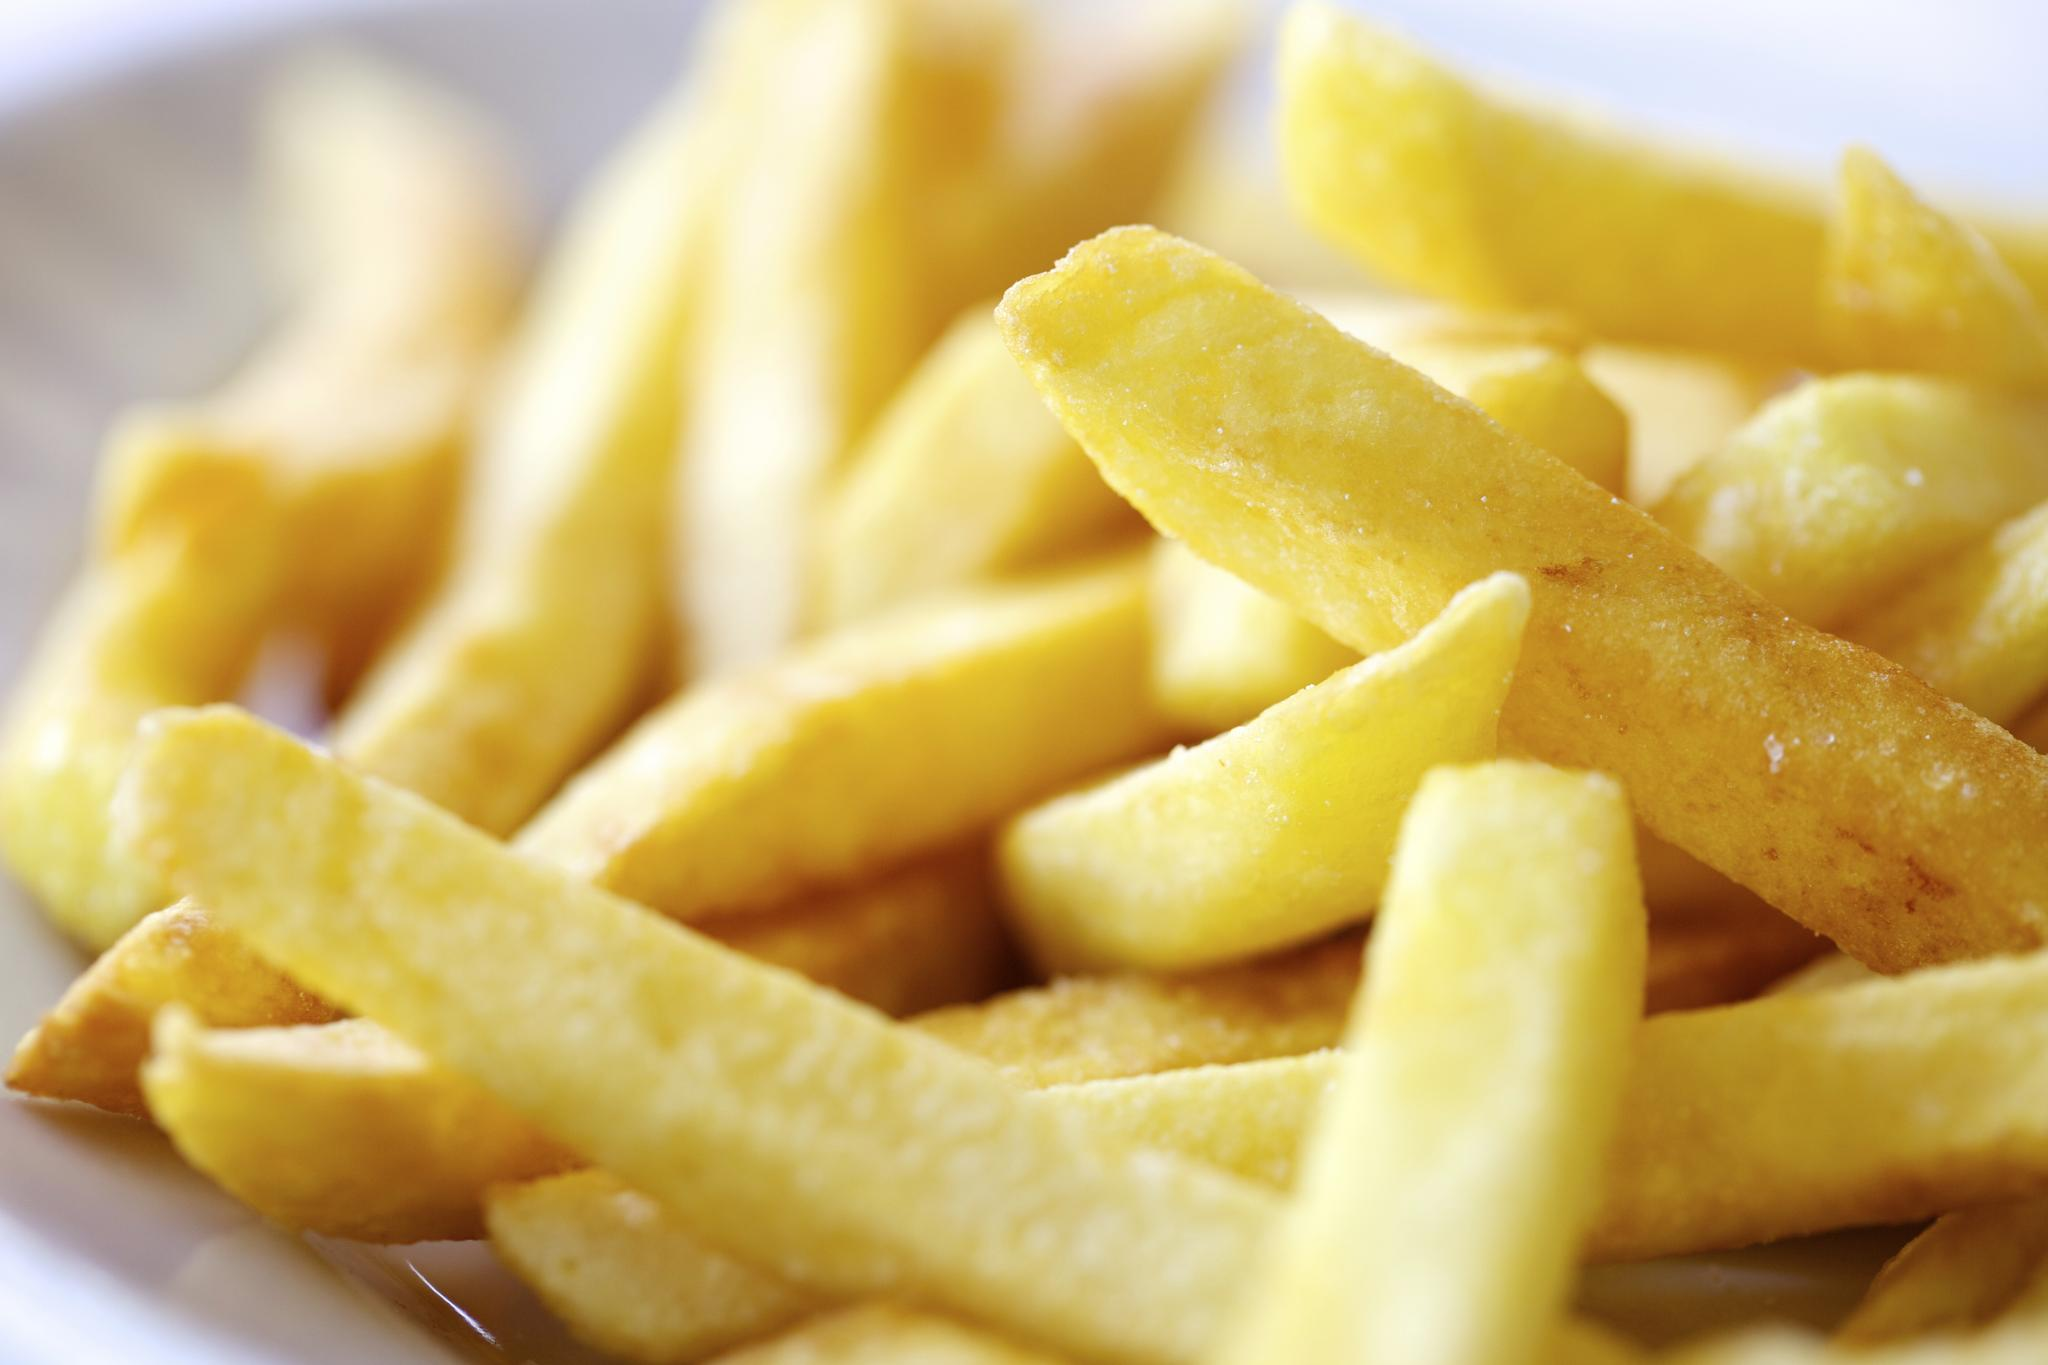 Fried Food Linked to Diabetes and Heart Disease—With an Asterisk